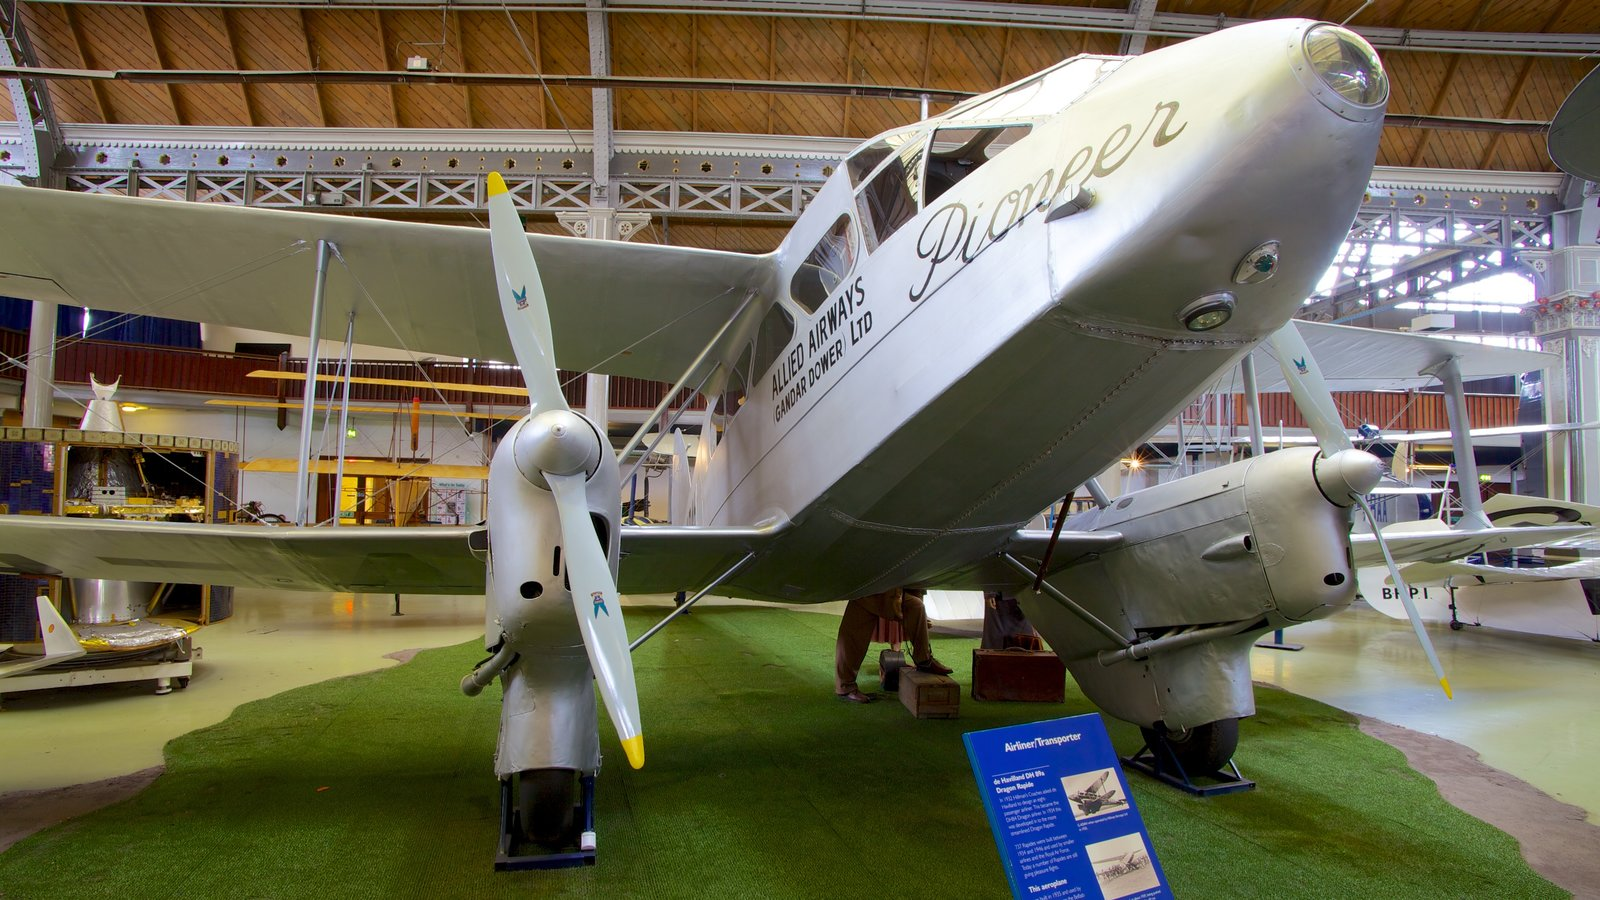 Museum of Science and Industry featuring interior views and aircraft